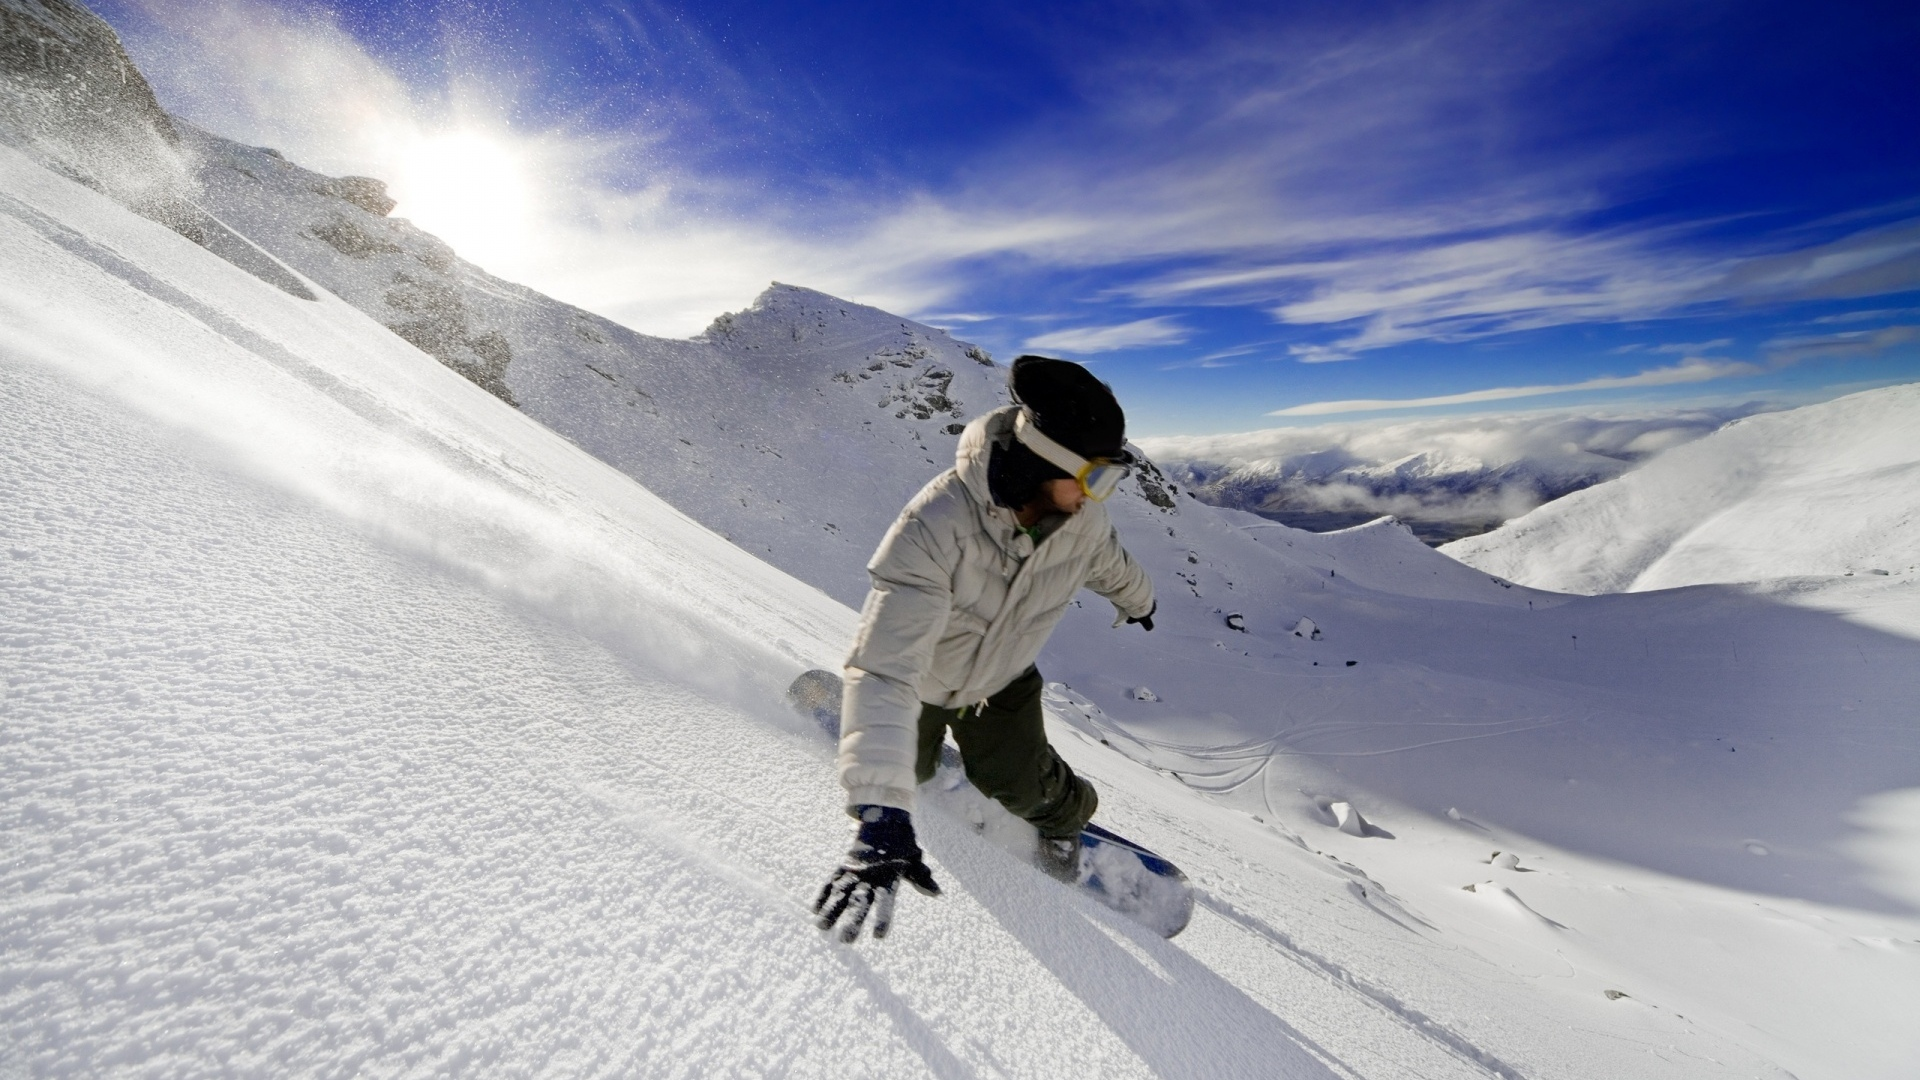 Download wallpaper 1920x1080 snowboard descent vertical extreme get the latest snowboard descent vertical news pictures and videos and learn all about snowboard descent vertical from wallpapers4u your wallpaper voltagebd Image collections